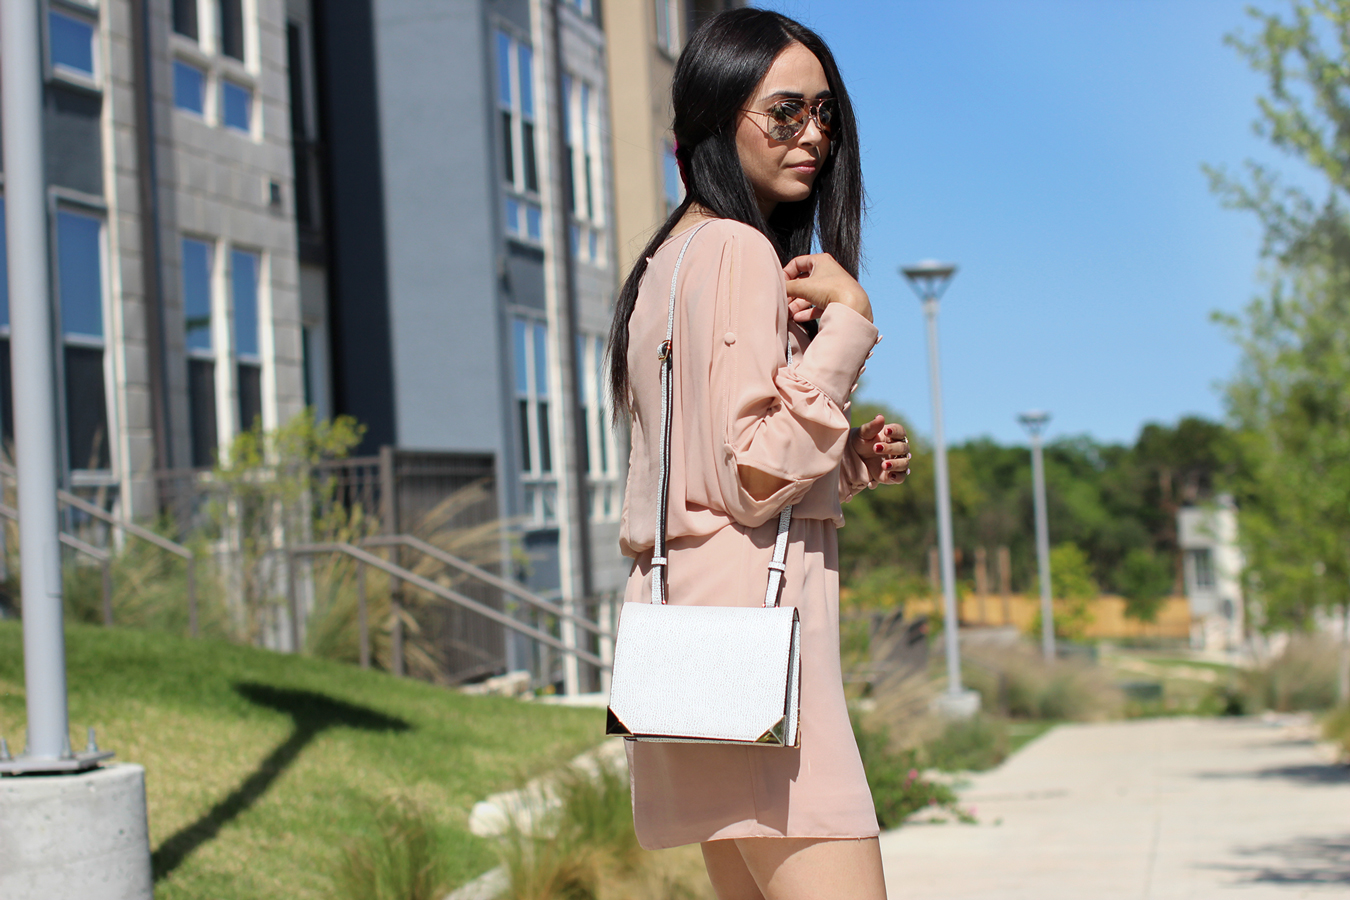 FTT-BLUSH-DRESS-NUDE-HEELS-MELIE-BIANCO-AUSTIN-FASHION-BLOGGER-5